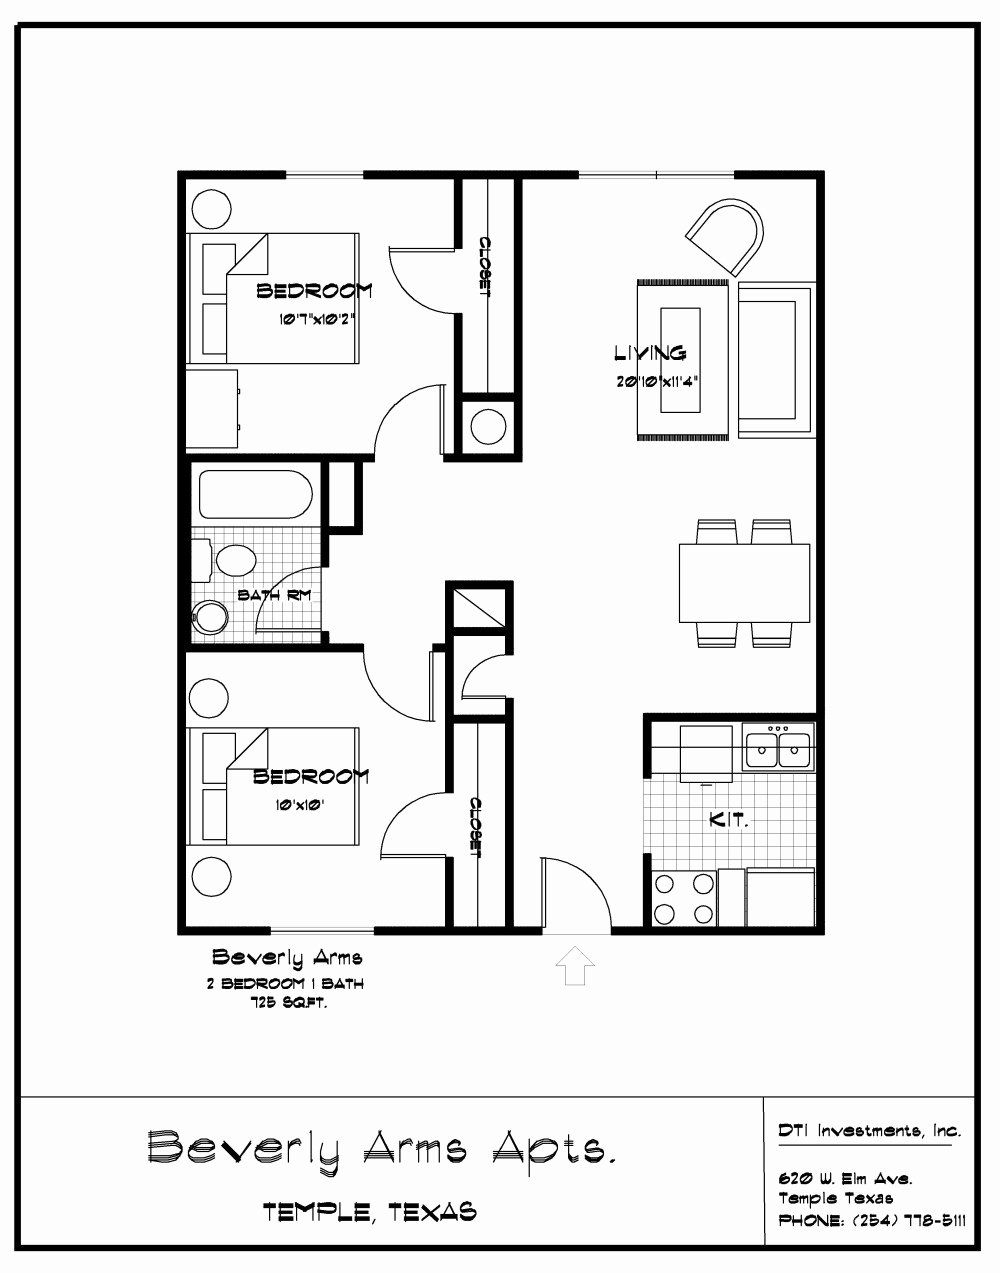 Basic Ranch House Plans Lovely Bedroom Floor Plan Dimensions House Plans Lovely Apartm Bedroom House Plans 2 Bedroom Apartment Floor Plan Small Apartment Plans